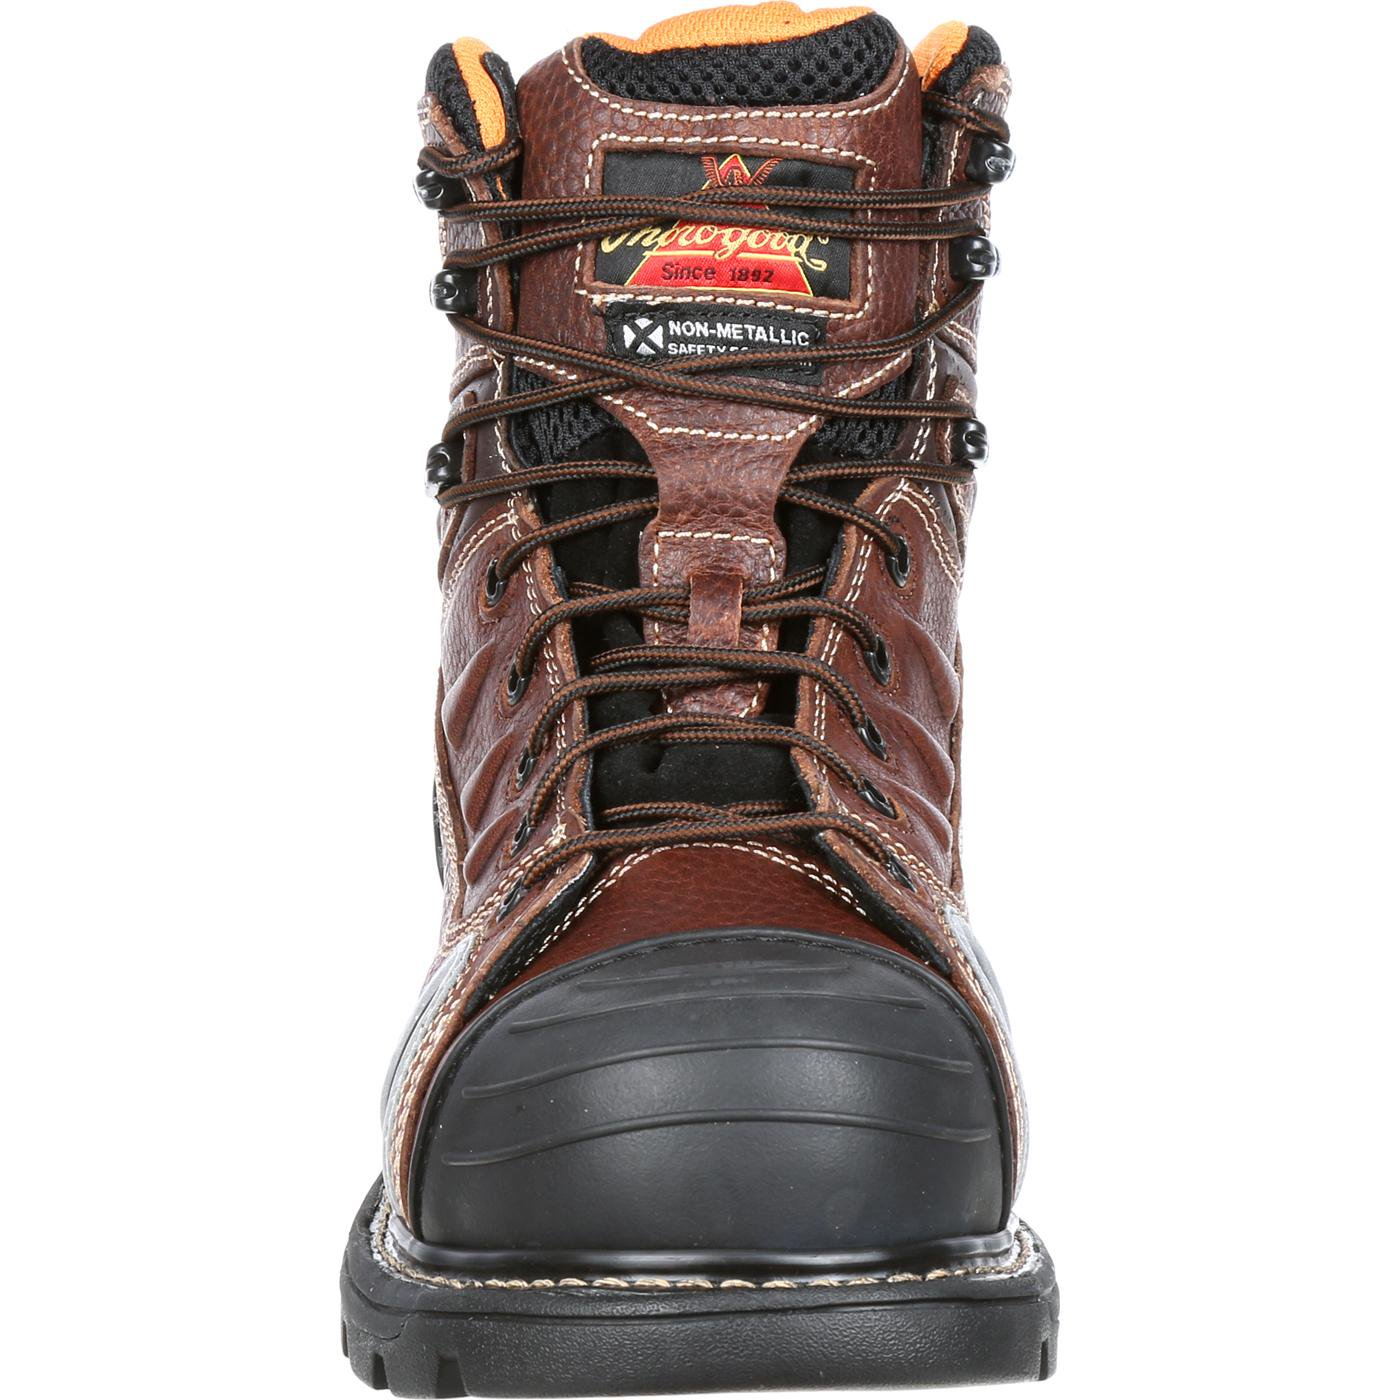 50f4a84aff5 Thorogood Composite Safety Toe Gen Flex 804-4445 6-Inch Work Boot, Brown,  13 M US